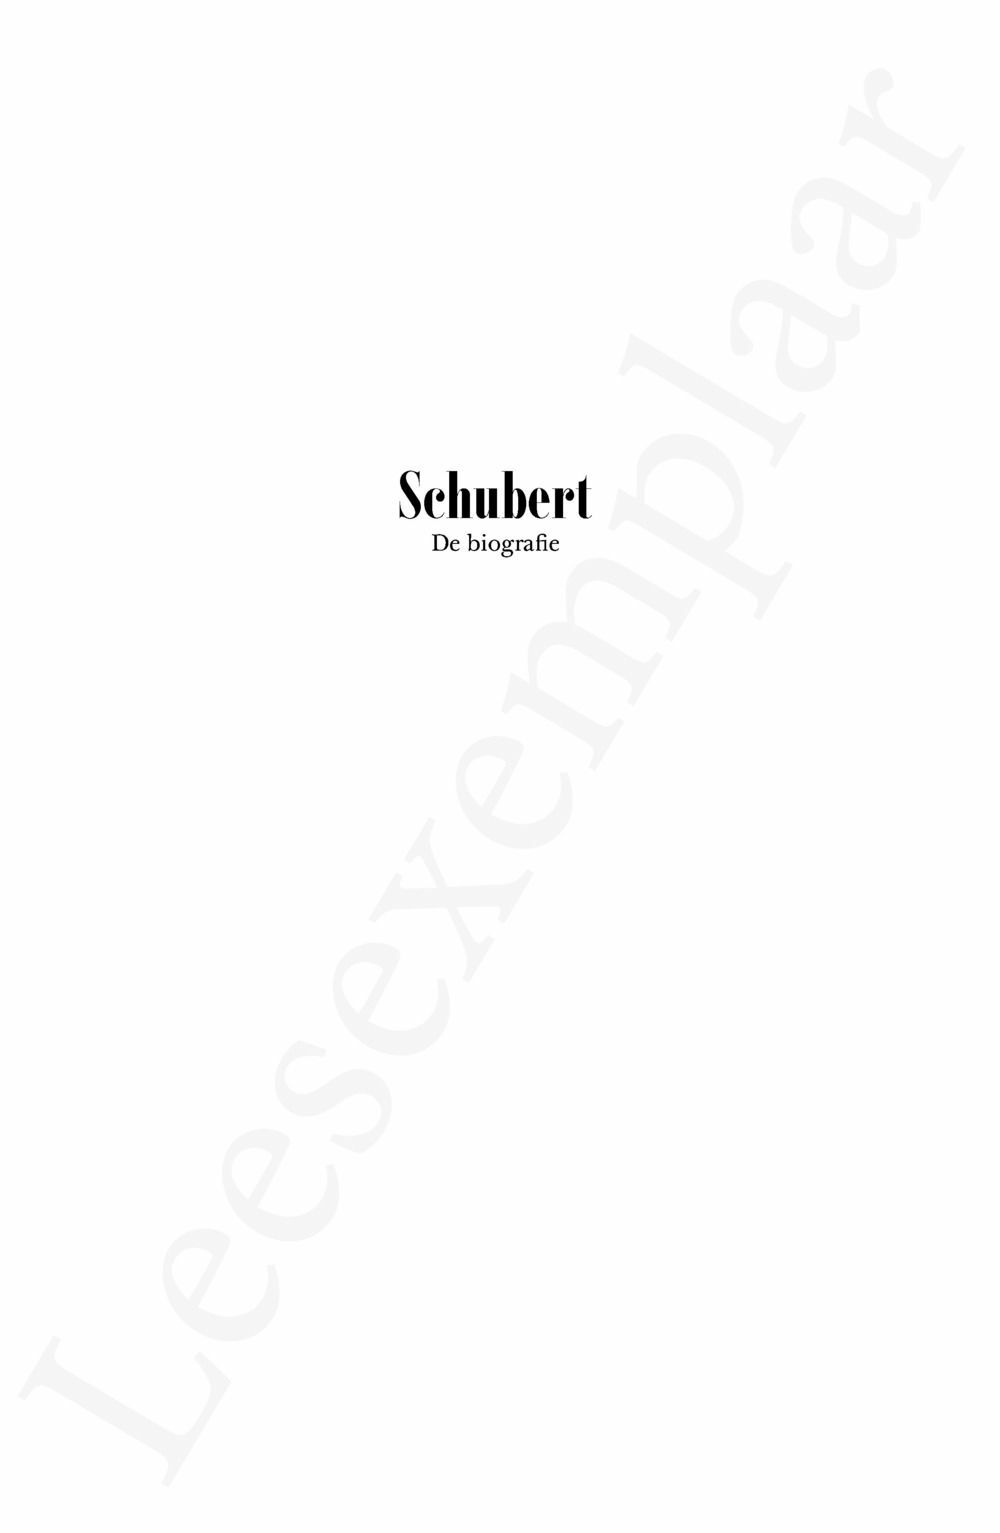 Preview: Schubert